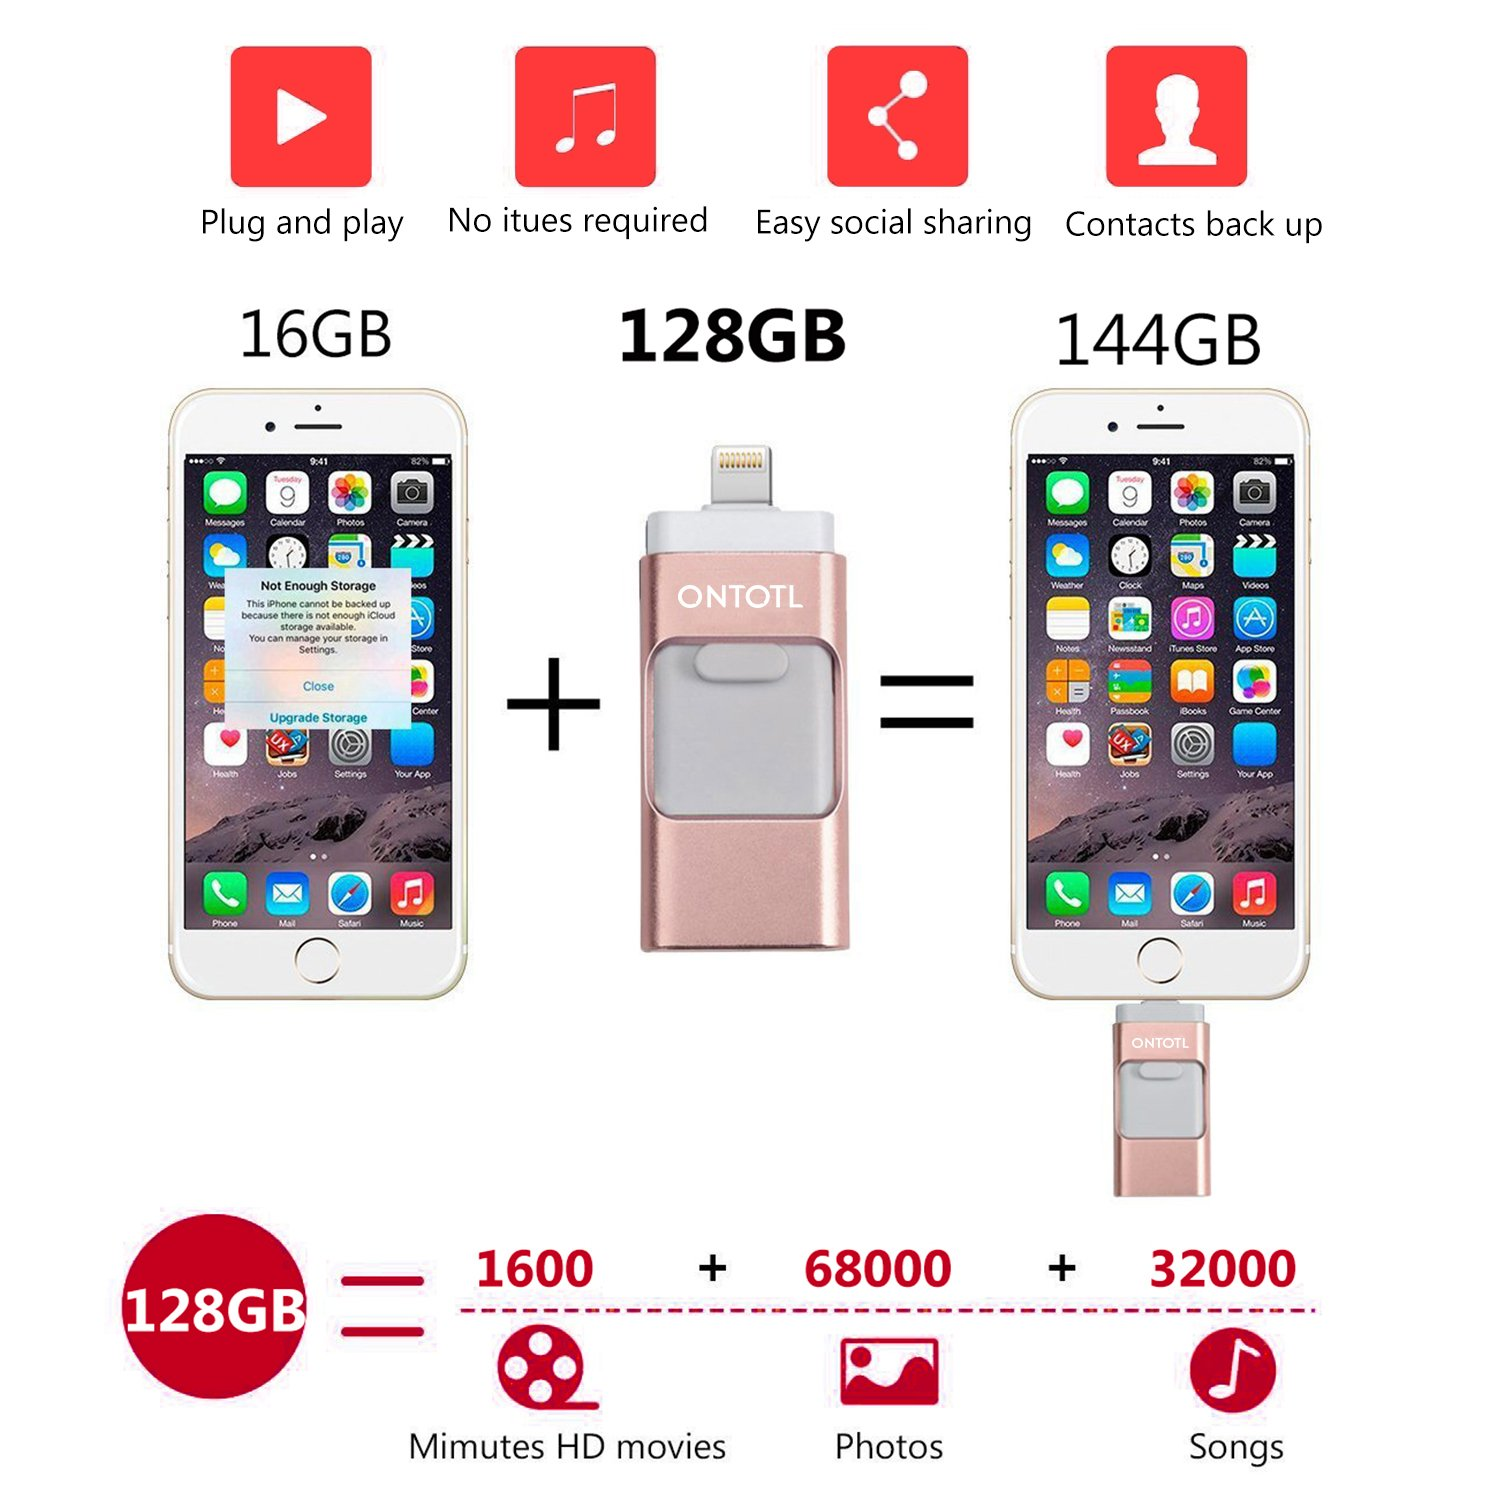 USB Flash Drives Compatible iPhone/iOS 128GB [3-in-1] Lightning OTG Jump Drive, ONTOTL USB 3.0 Thumb Drive External USB Memory Storage, Flash Memory Stick Compatible Apple, iPad, Android & PC (Pink) by ONTOTL (Image #3)